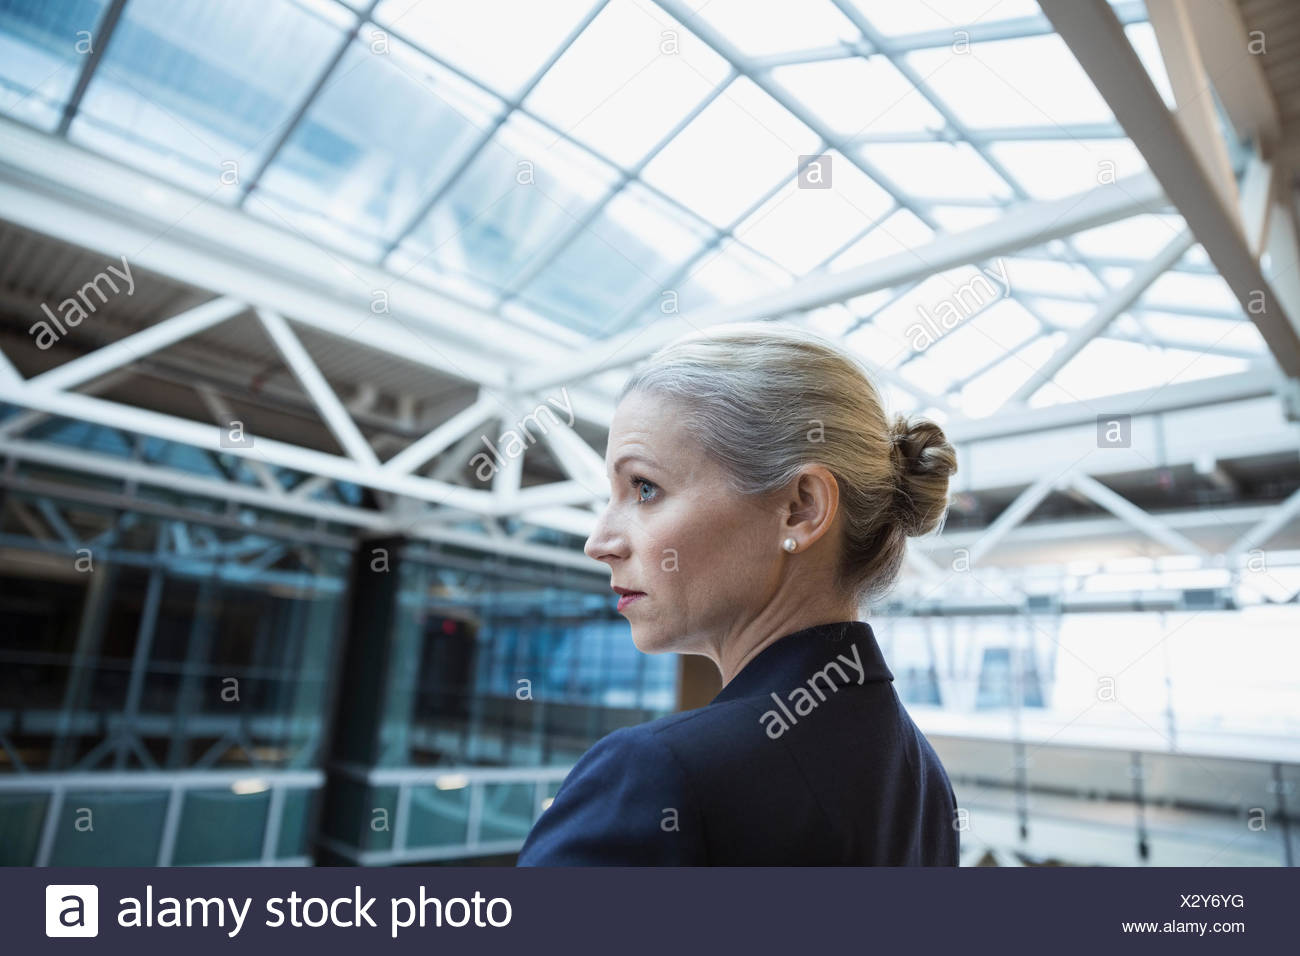 Serious businesswoman in atrium - Stock Image